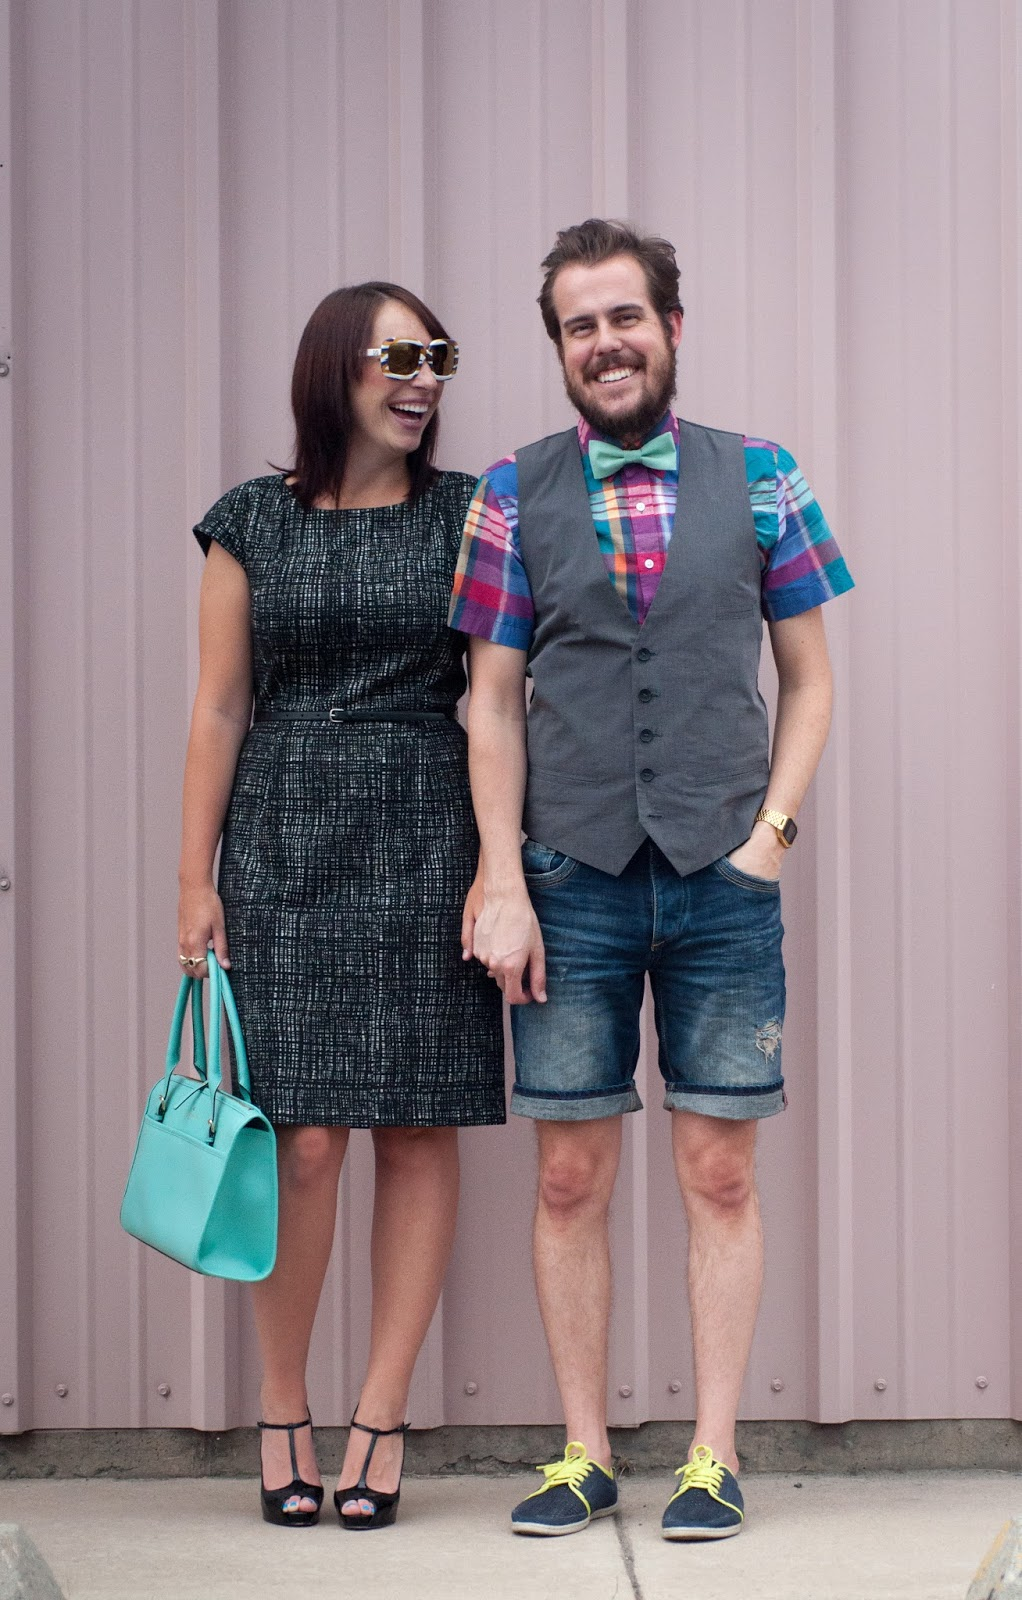 couples fashion, couples style, wedding attire, ootd, zara men, kate spade handbag, target style